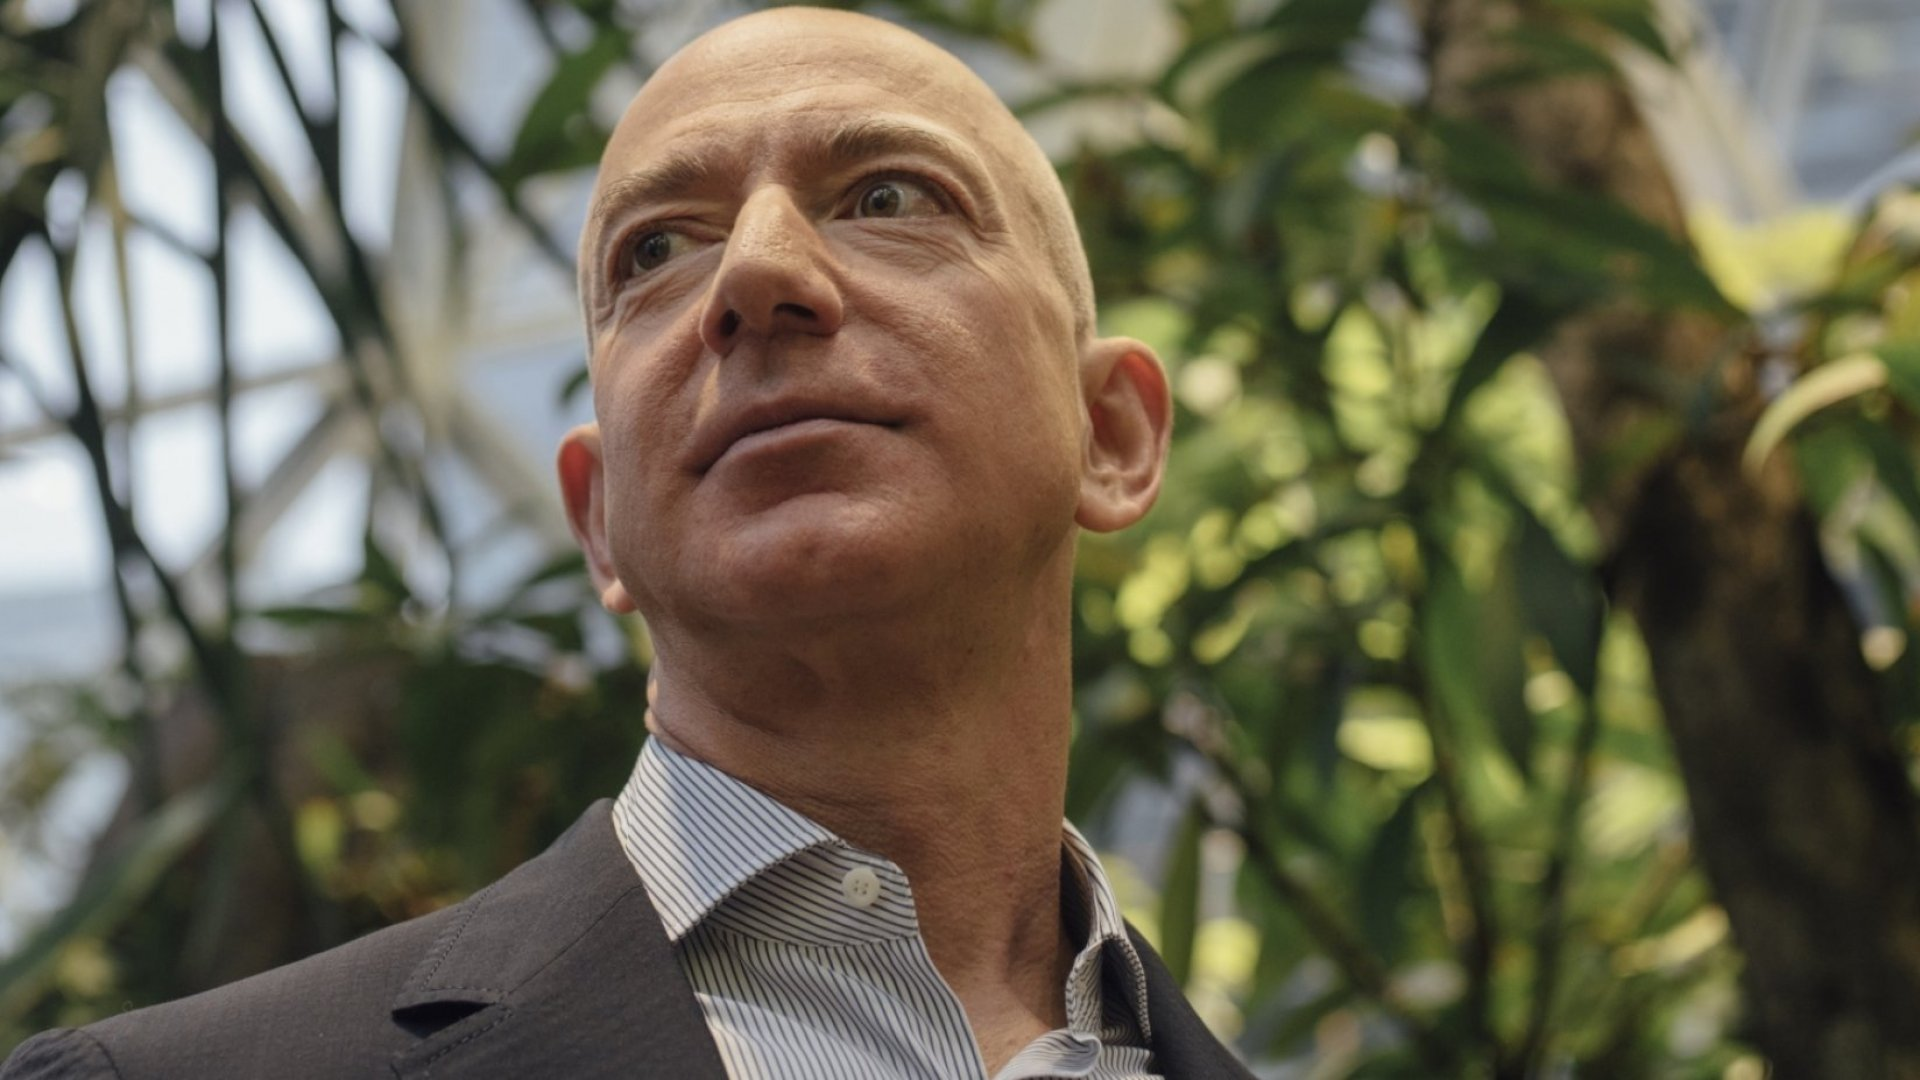 Is Amazon Slipping? Uncovering a Dirty Secret About Their Seller Policy (by Accident)